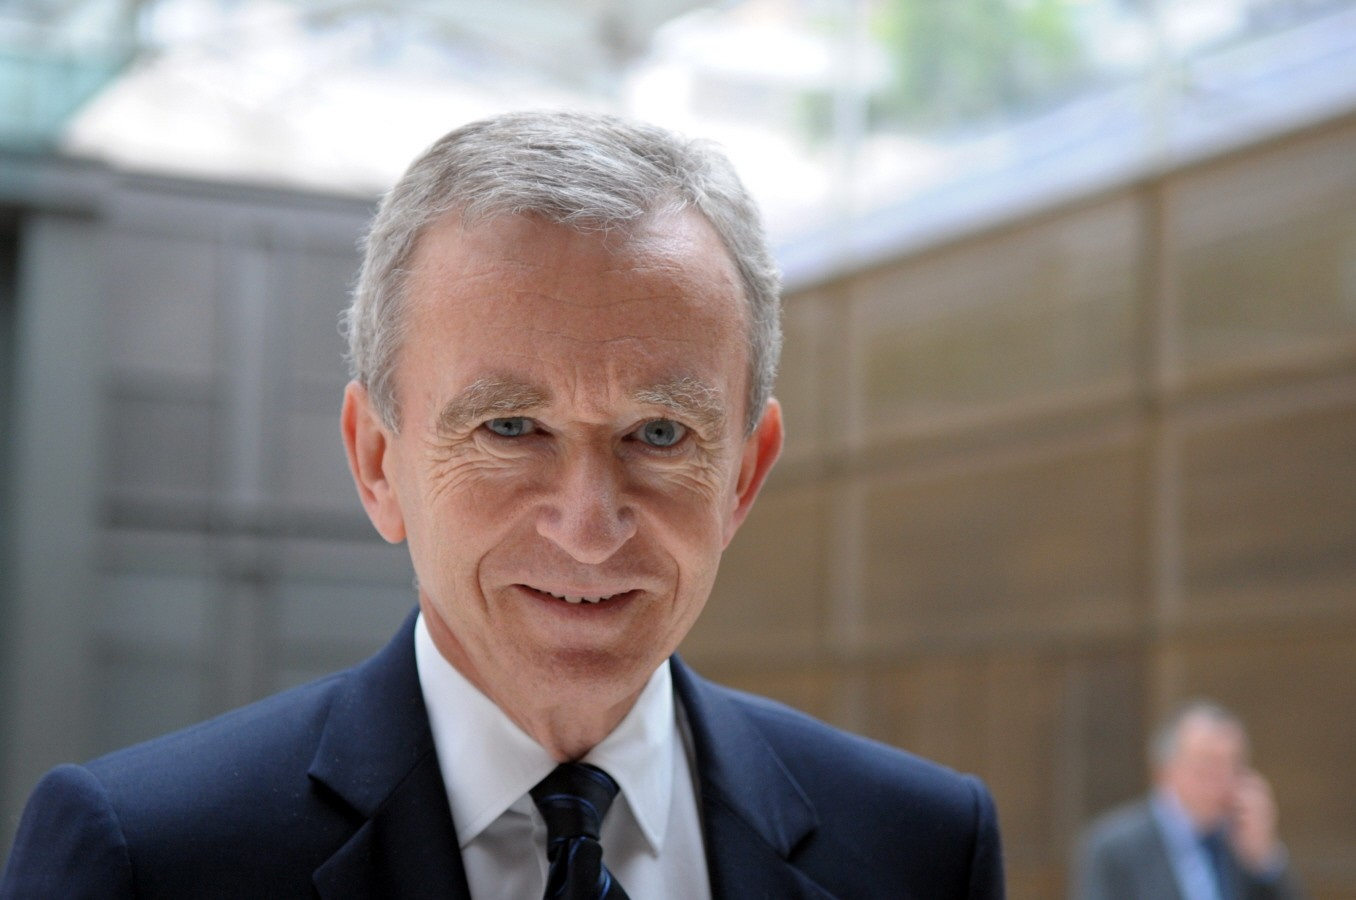 bernard arnault - second of the top 10 richest people in the world 2020